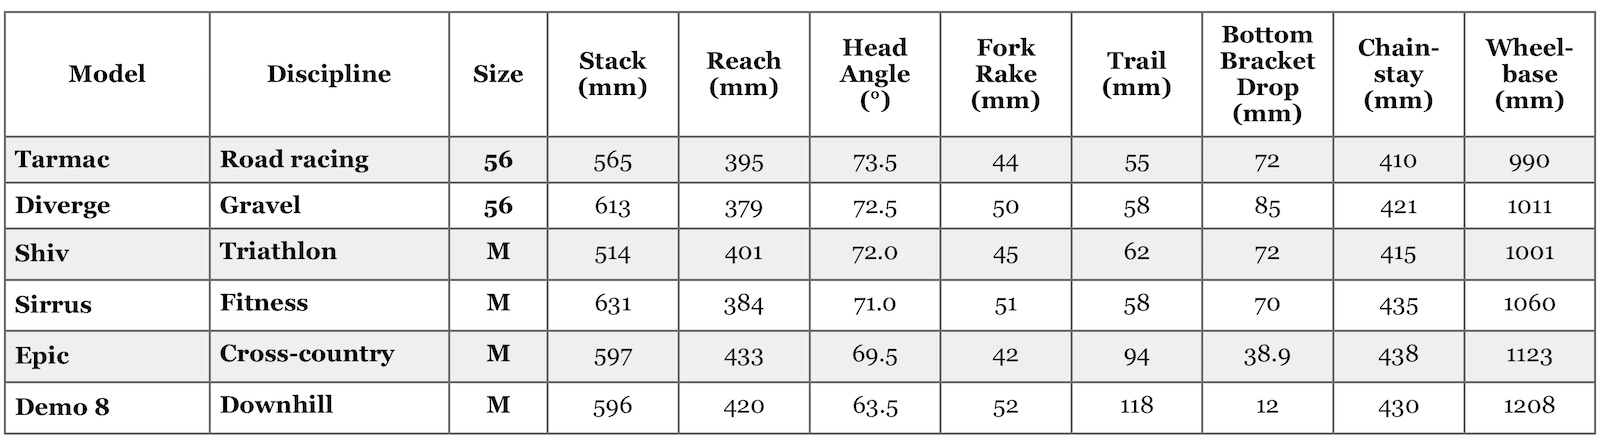 geometry tables for different riding disciplines